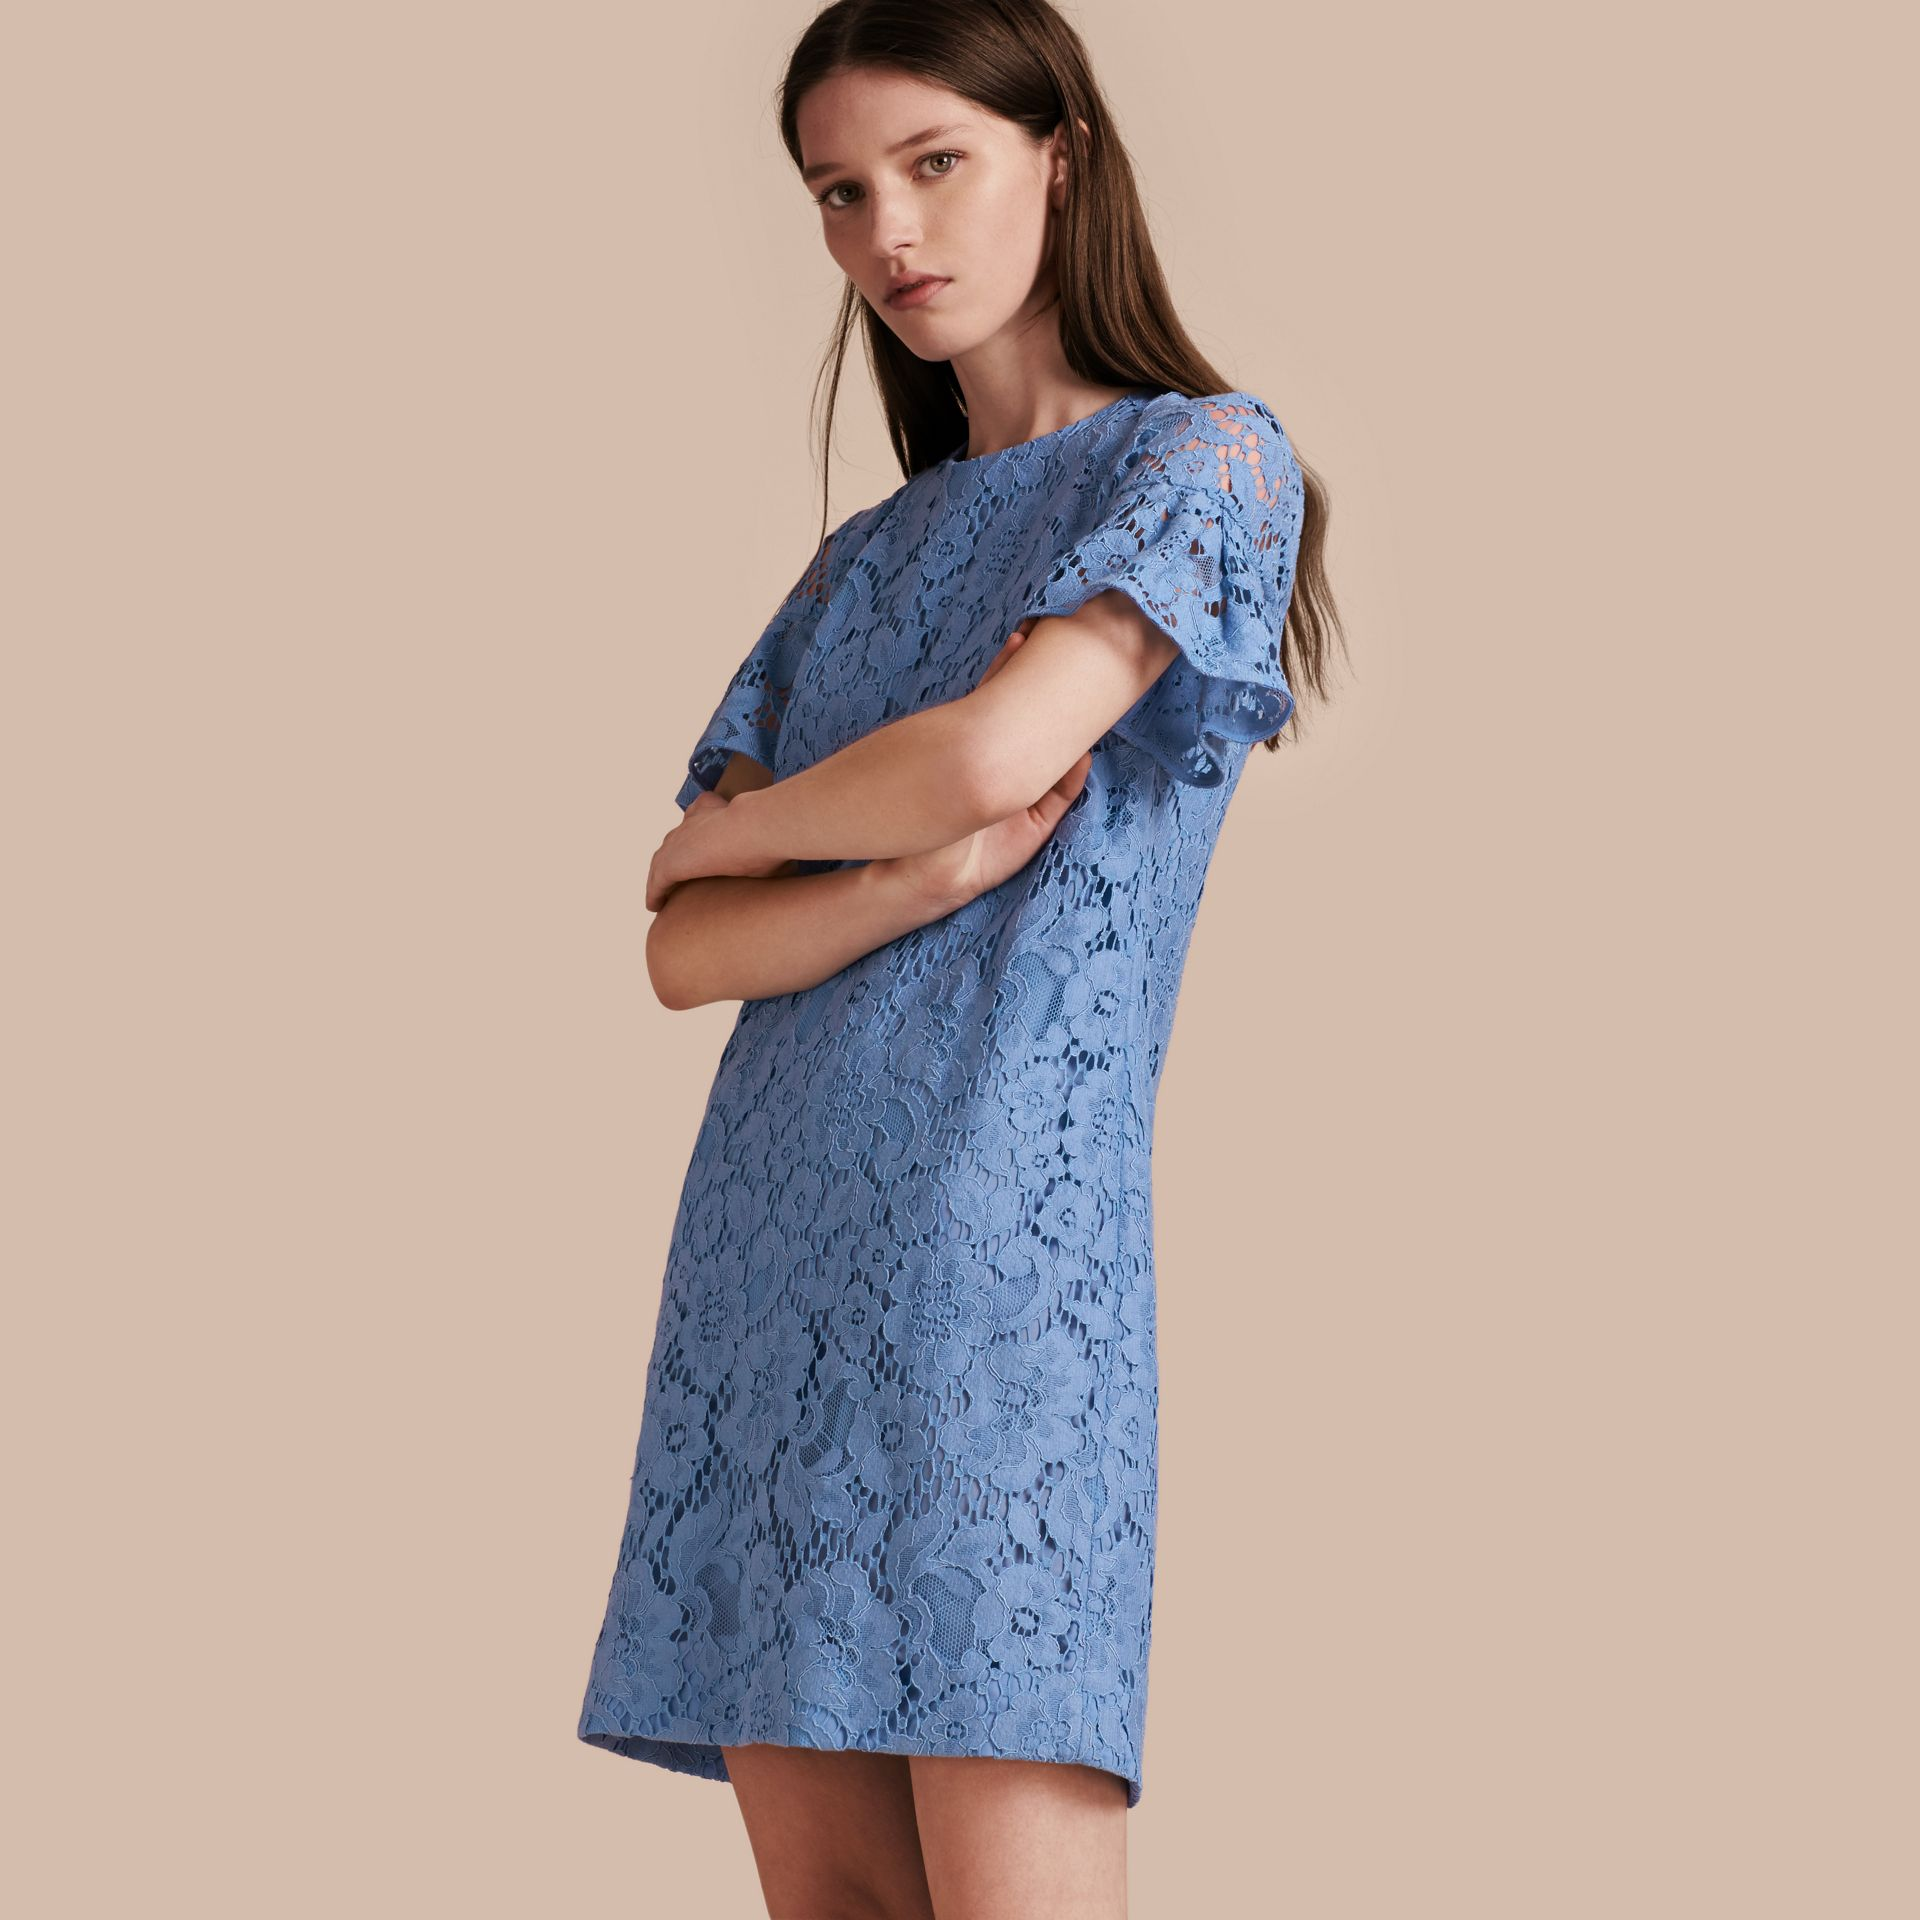 Macramé Lace Short Shift Dress with Ruffle Sleeves - gallery image 1